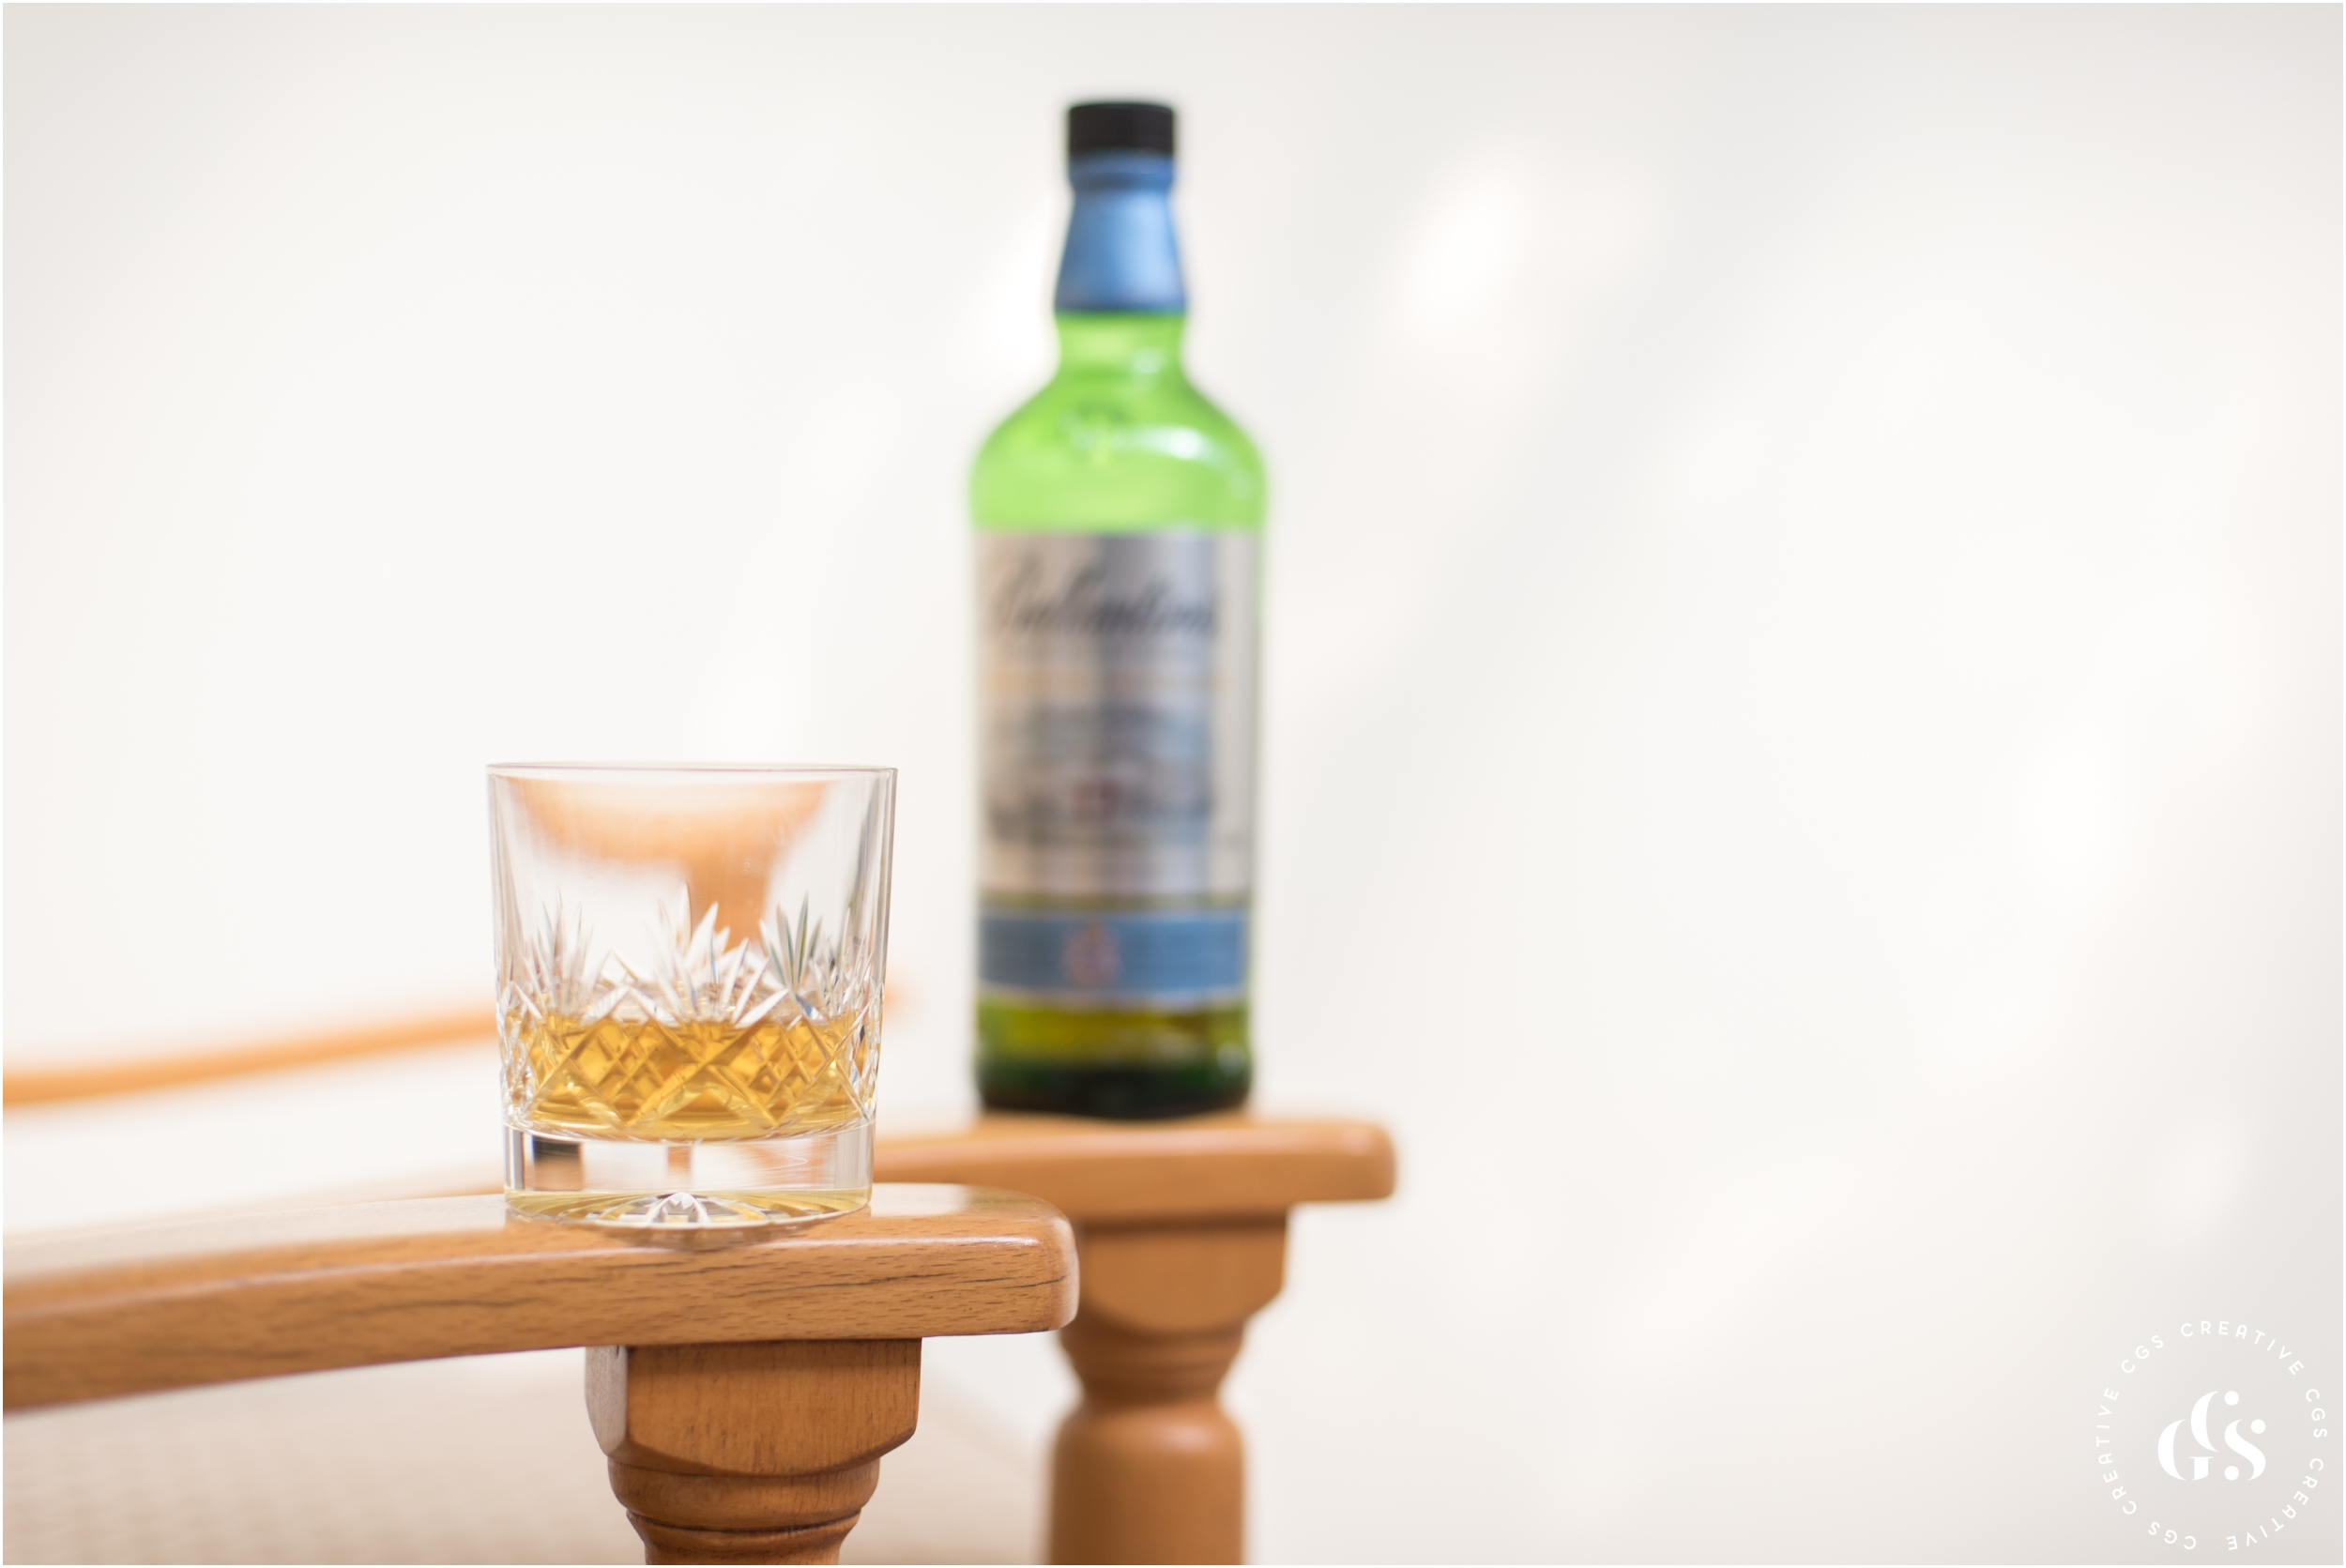 Whisky Of The Week Brand Photography by Roxy Hutton of CGScreative (271 of 307).JPG